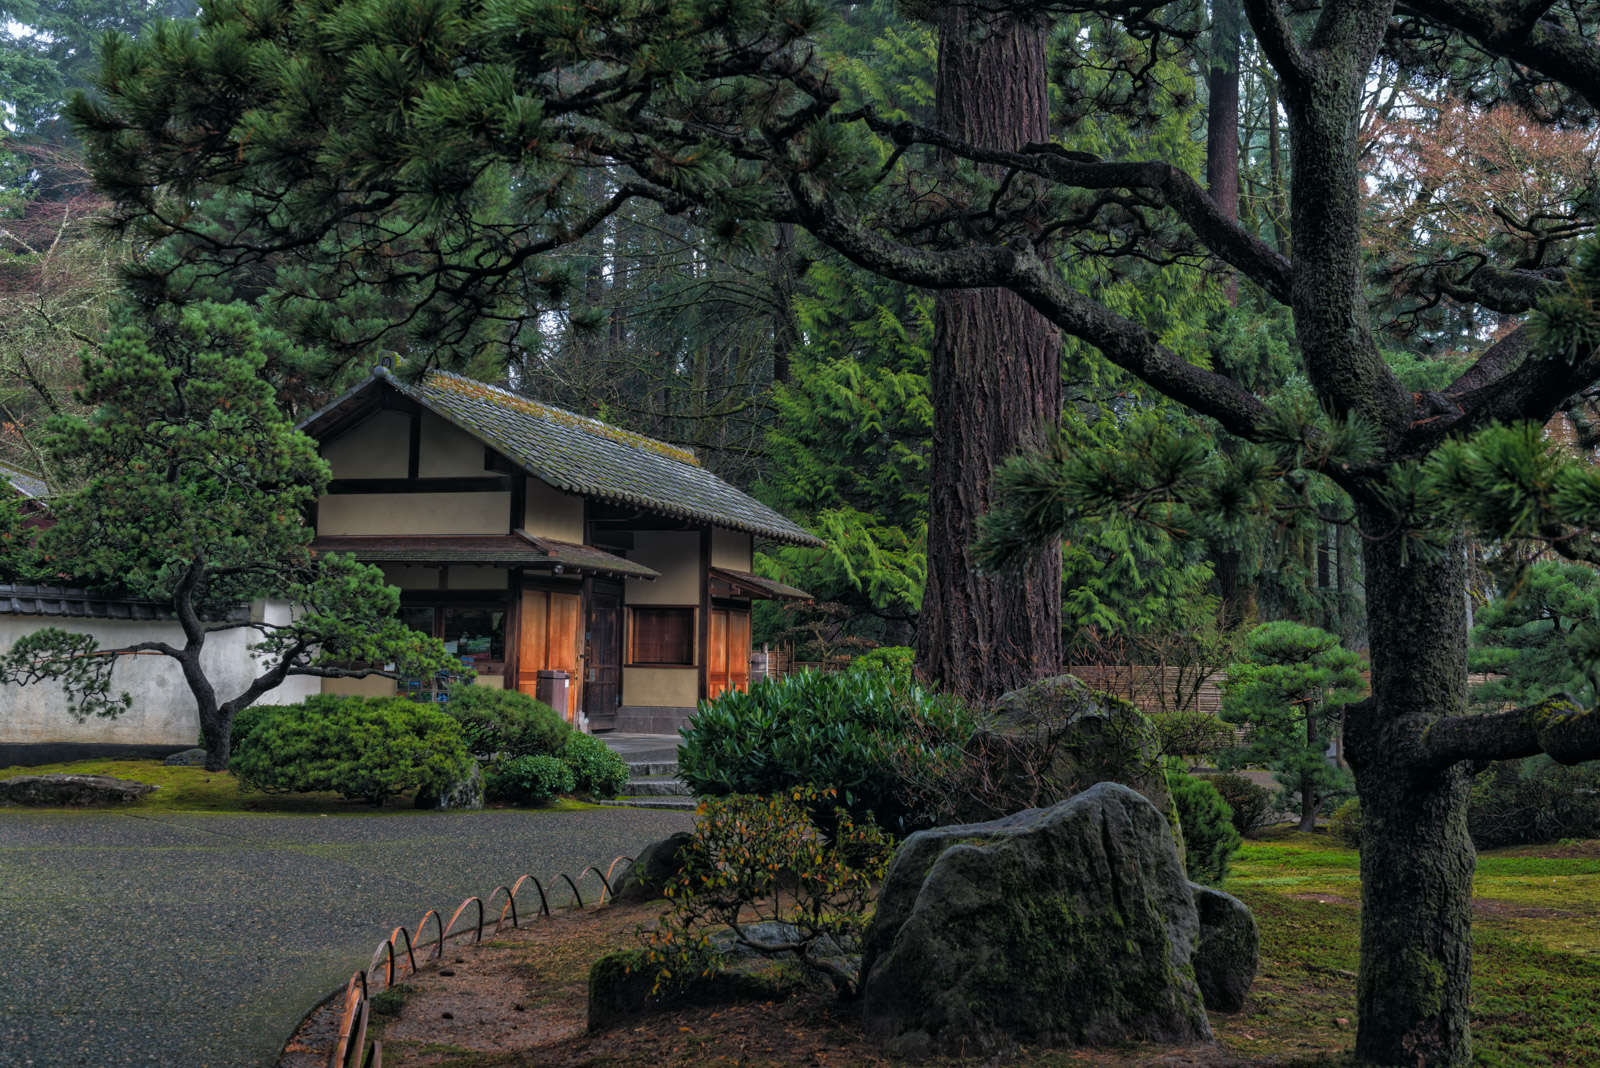 The garden path magazine january 2016 portland - Portland japanese garden admission ...